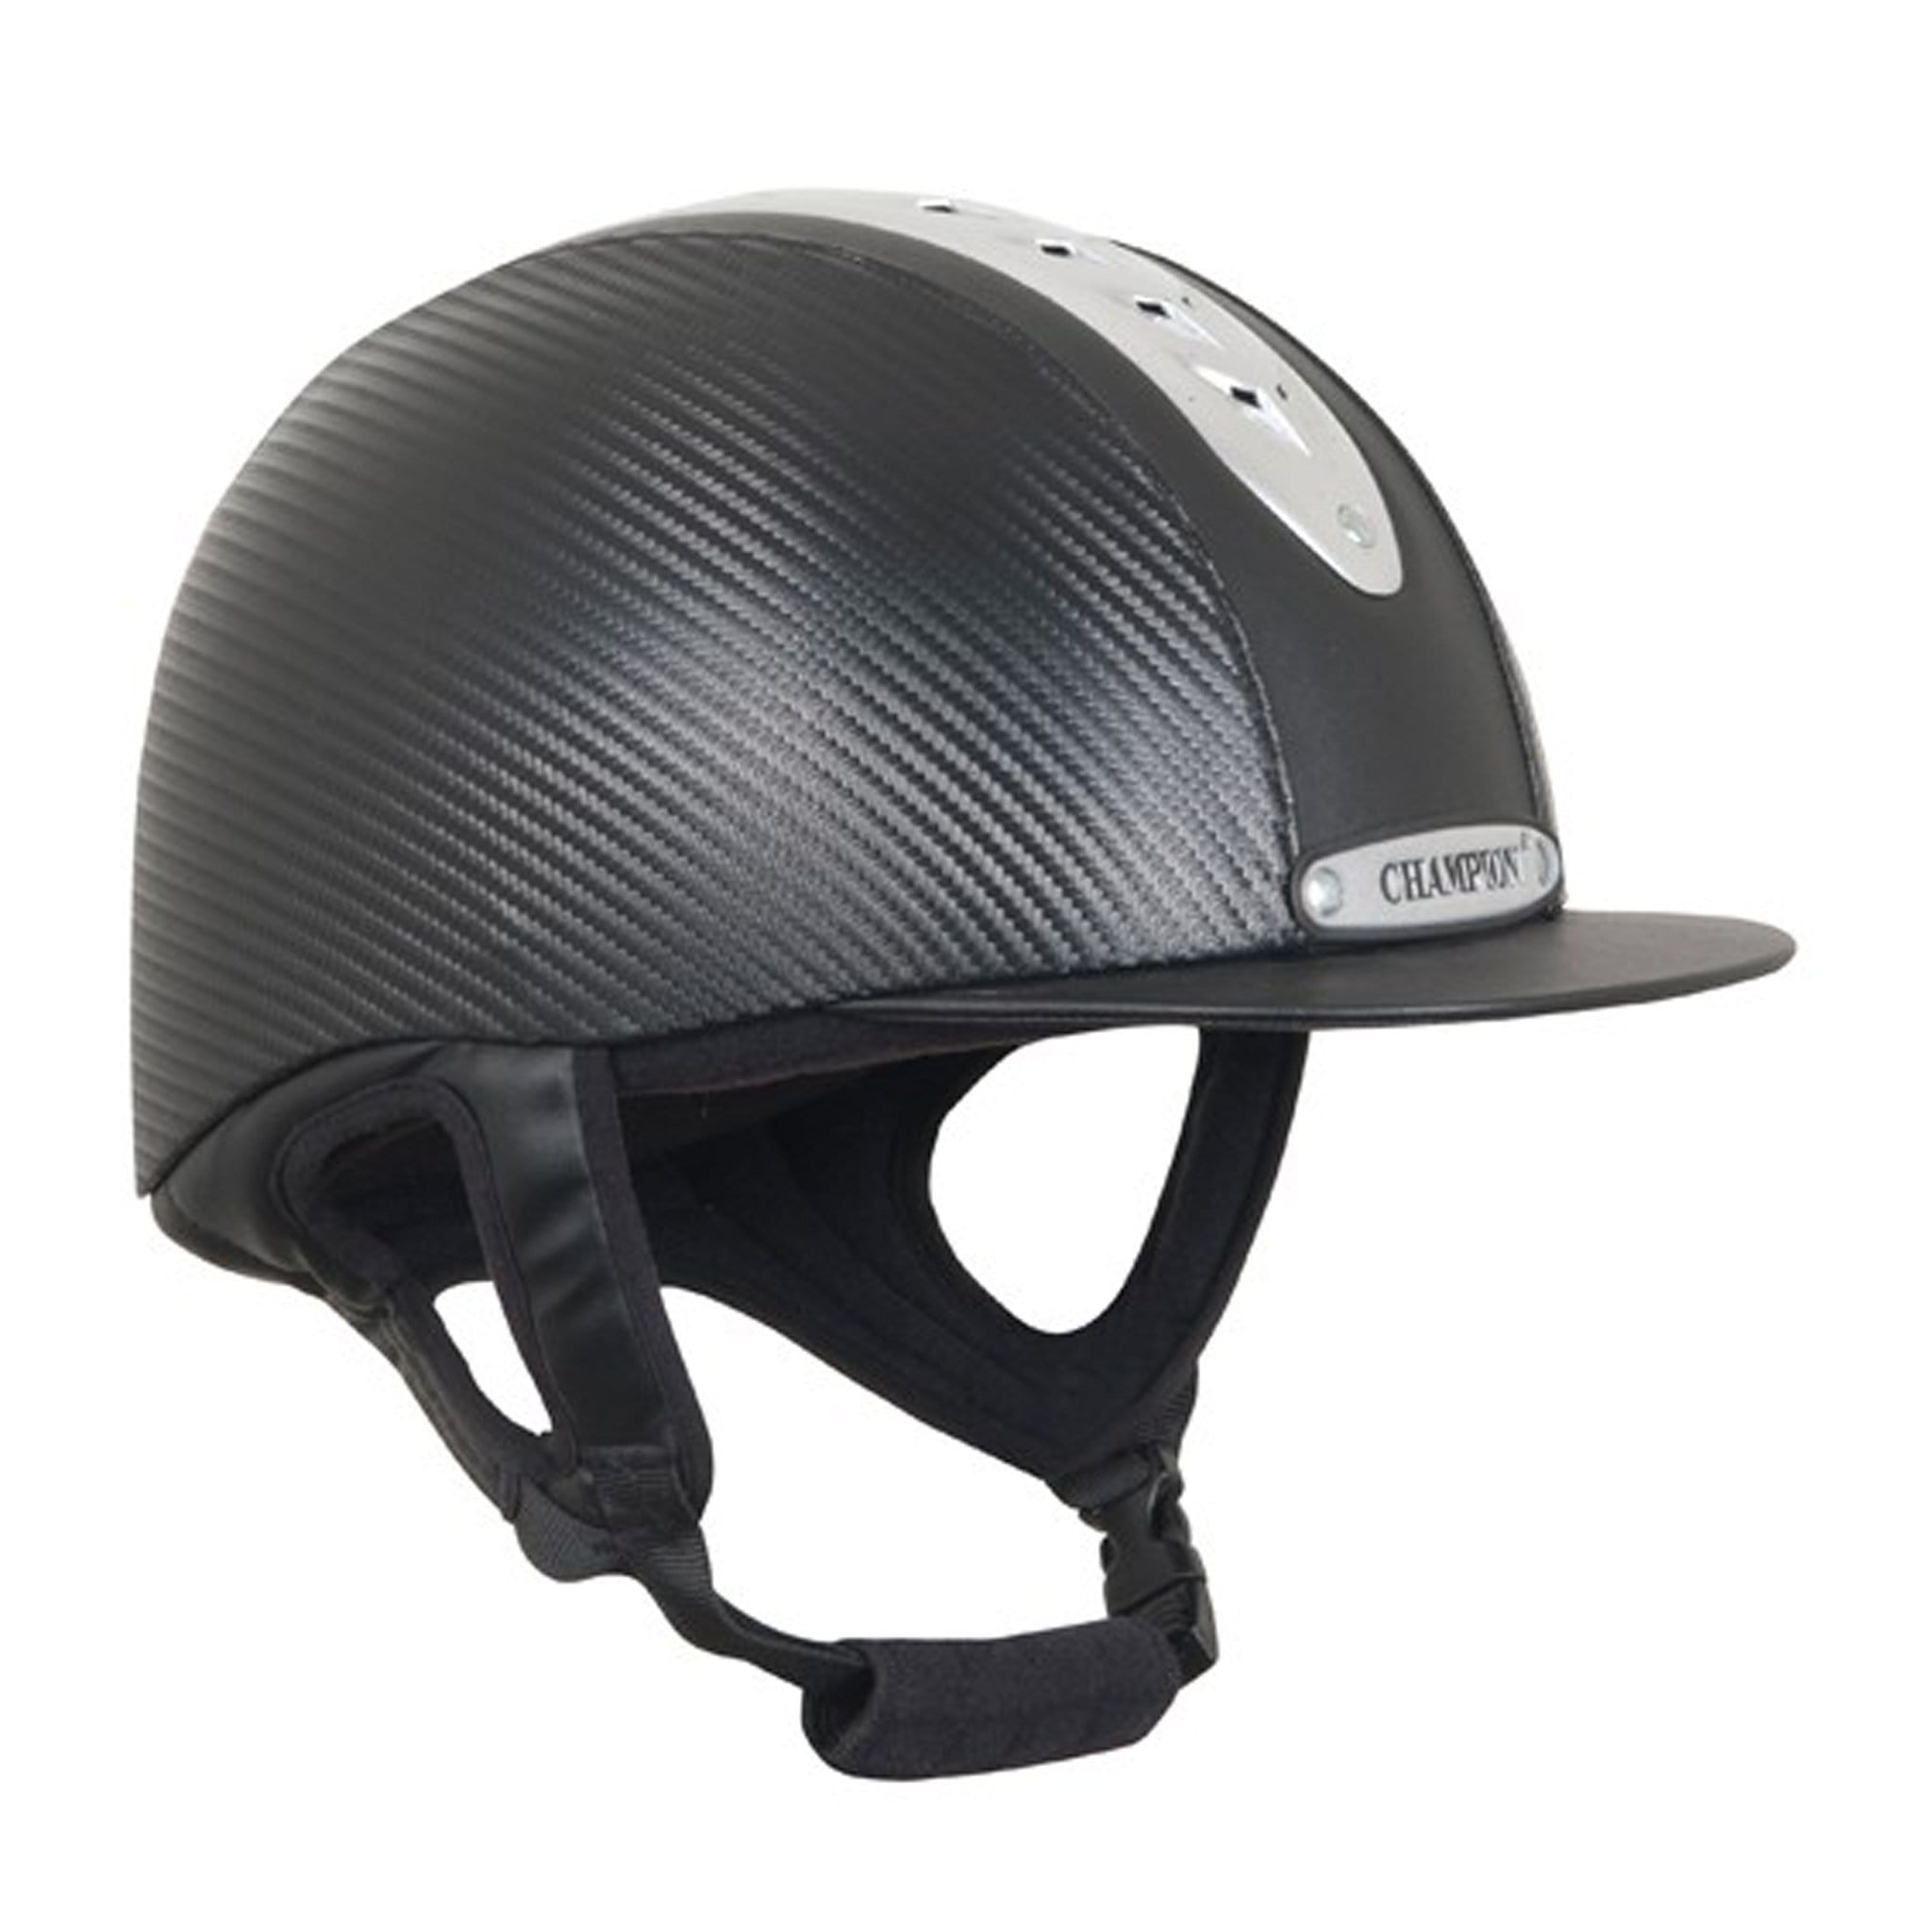 Champion Evolution Pro Riding Hat Right Side EVOPROCARBBK-51.